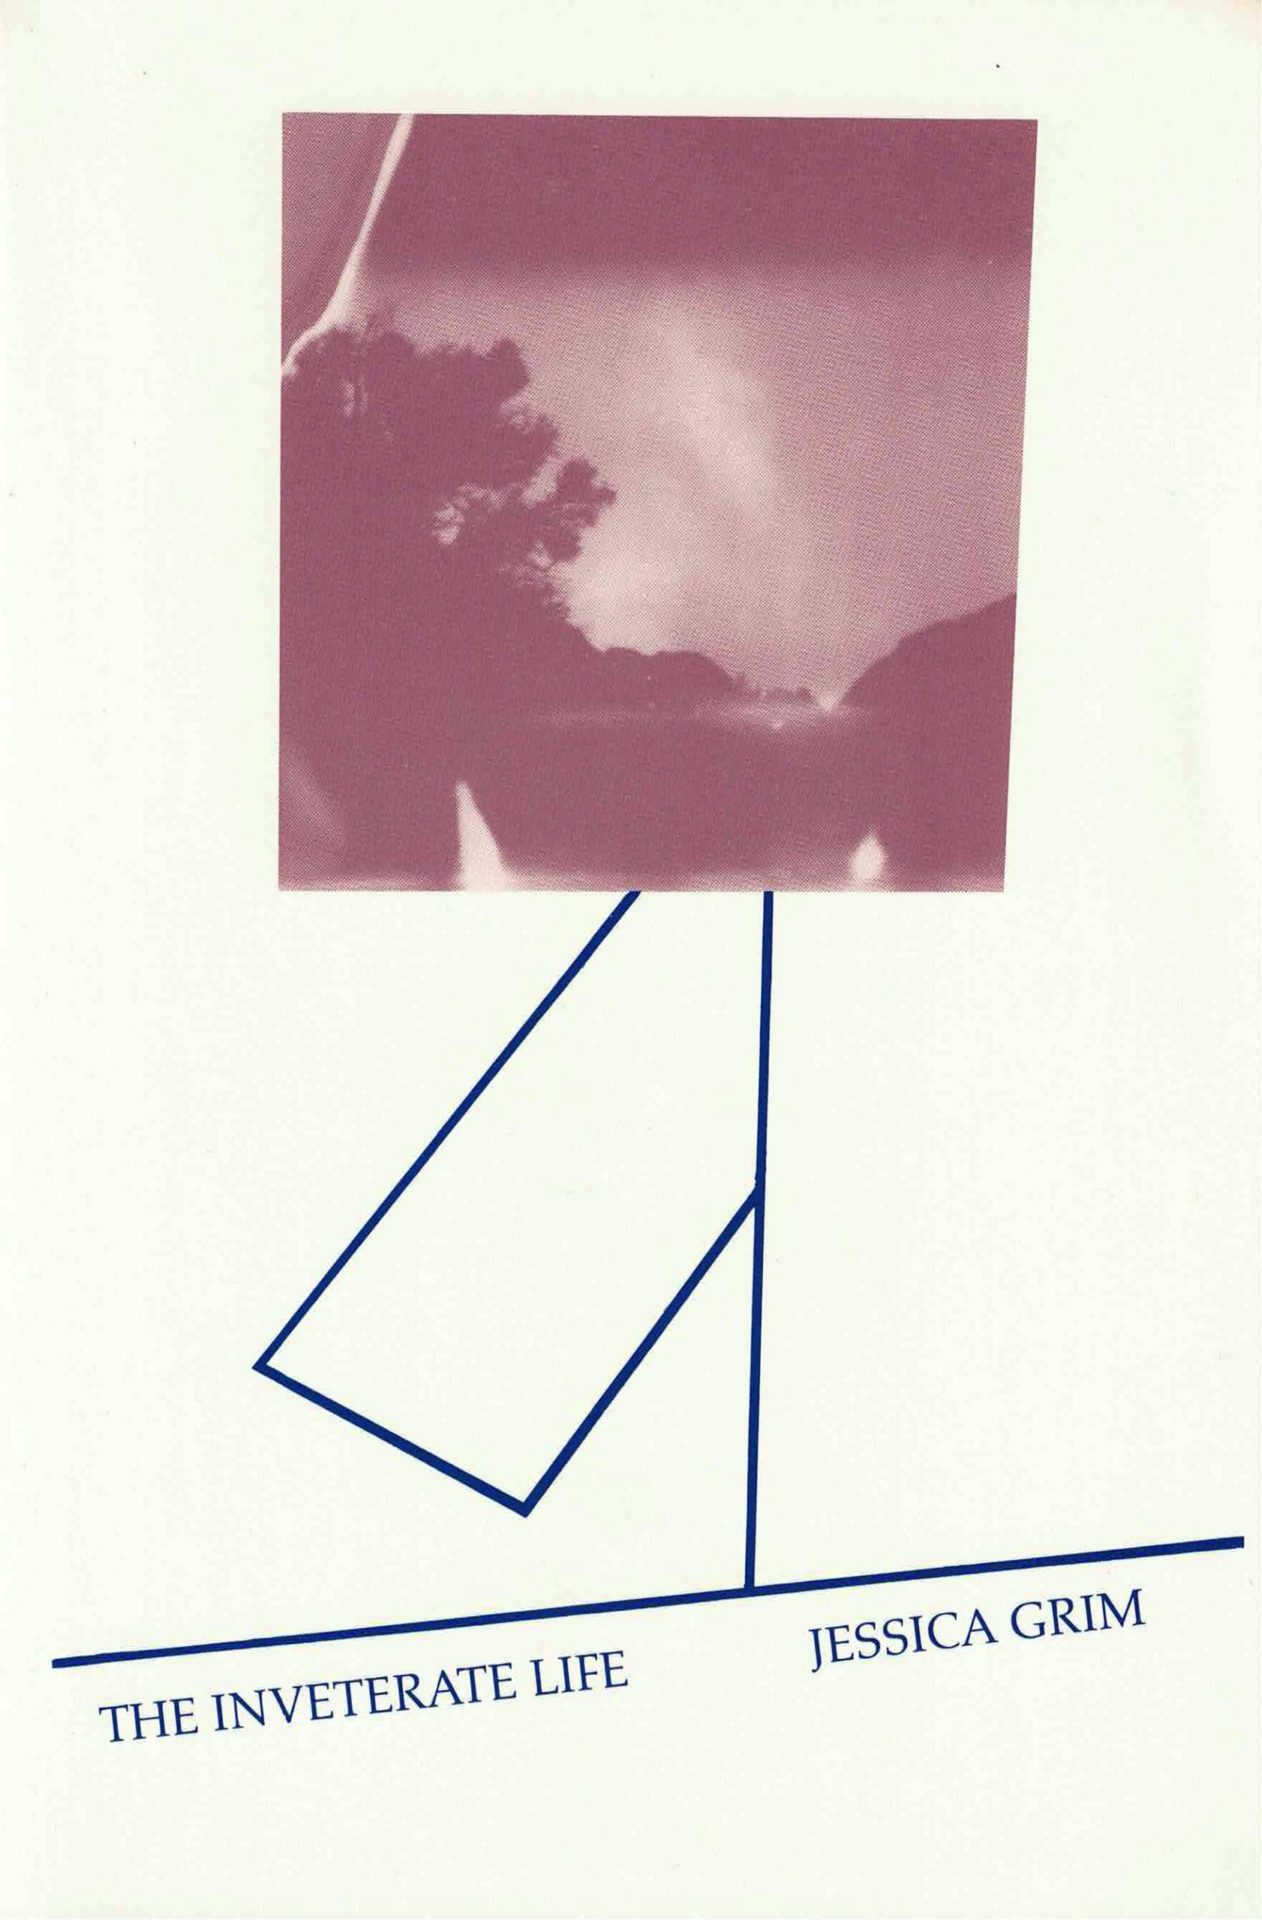 cover of The Inveterate Life by Jessica Grim, white background with navy blue line horizontal across the bottom, then another connecting vertically to rose tinted photo of a landscape